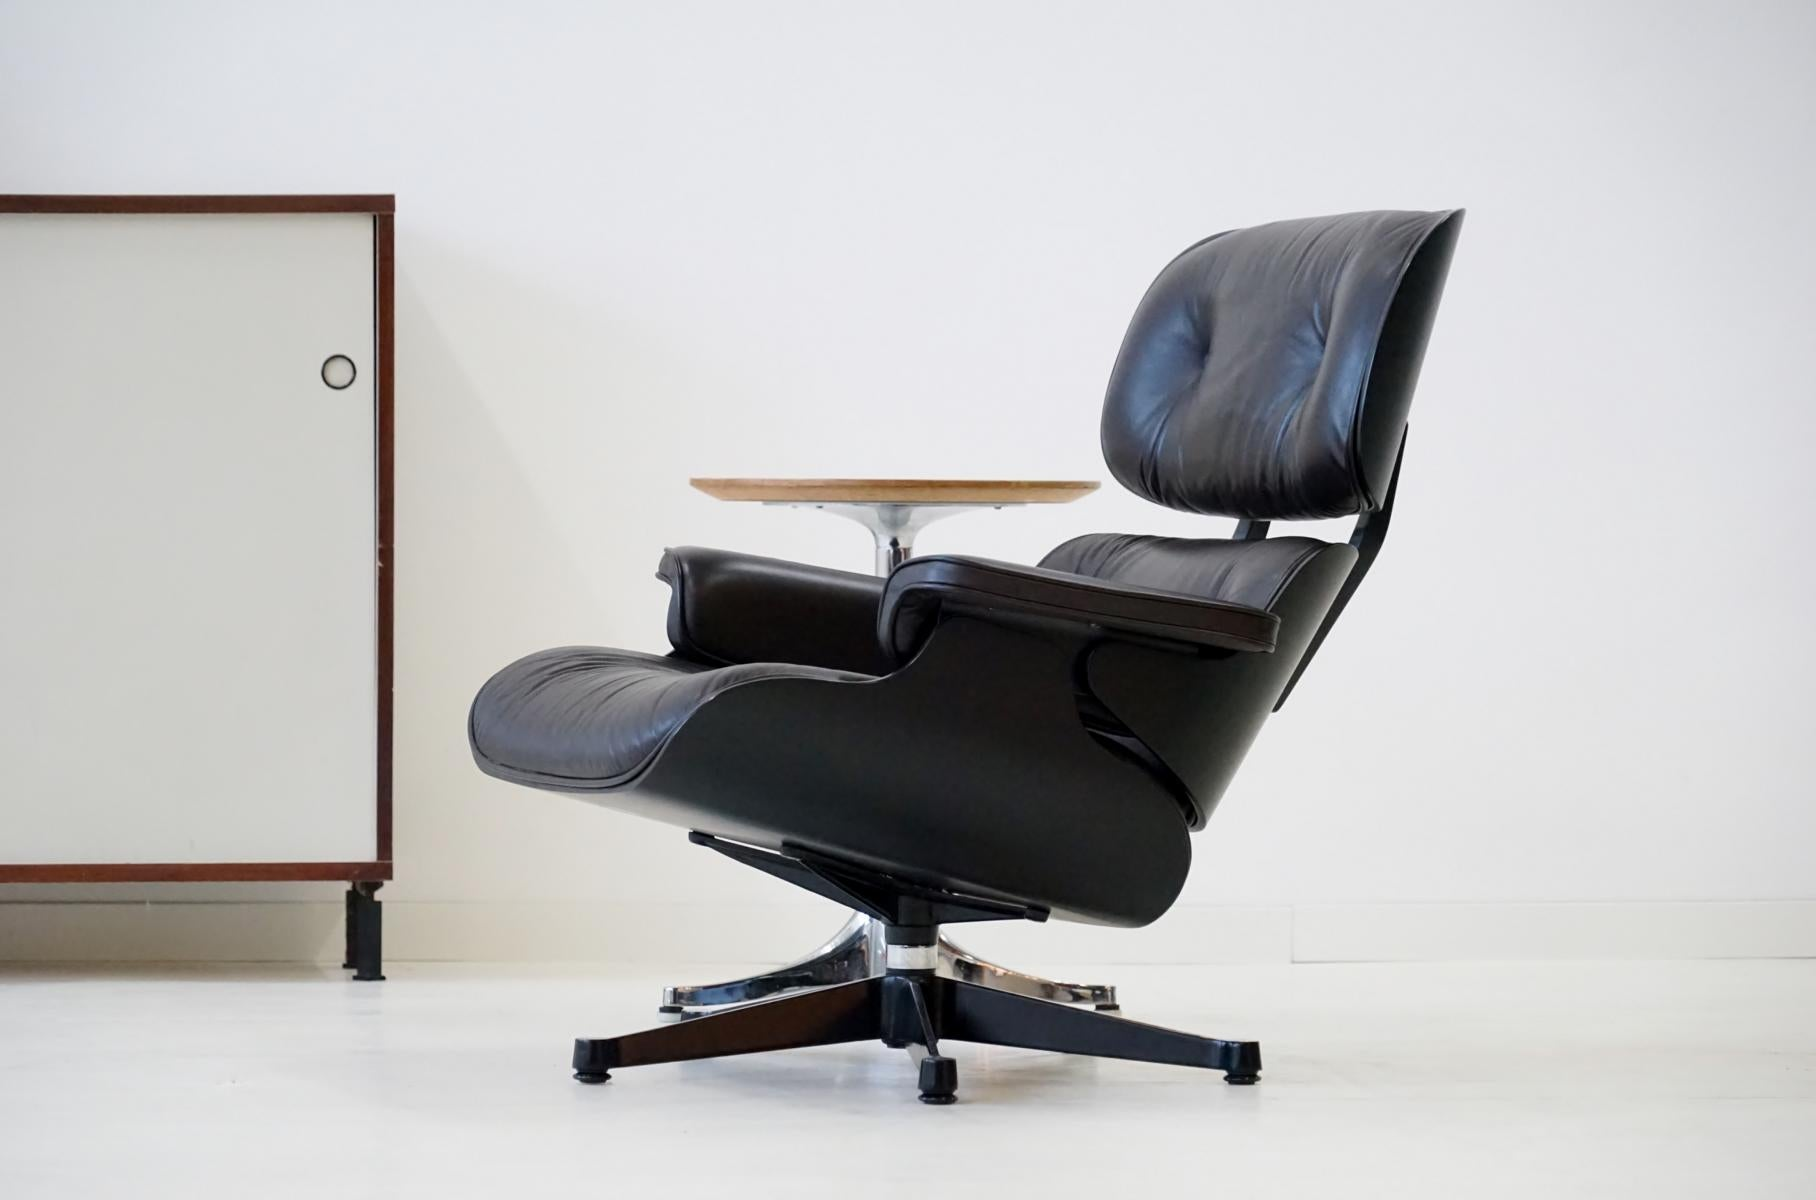 Lounge Sessel Eames Original Lounge Chair By Charles Eames Vitra From Exhibition